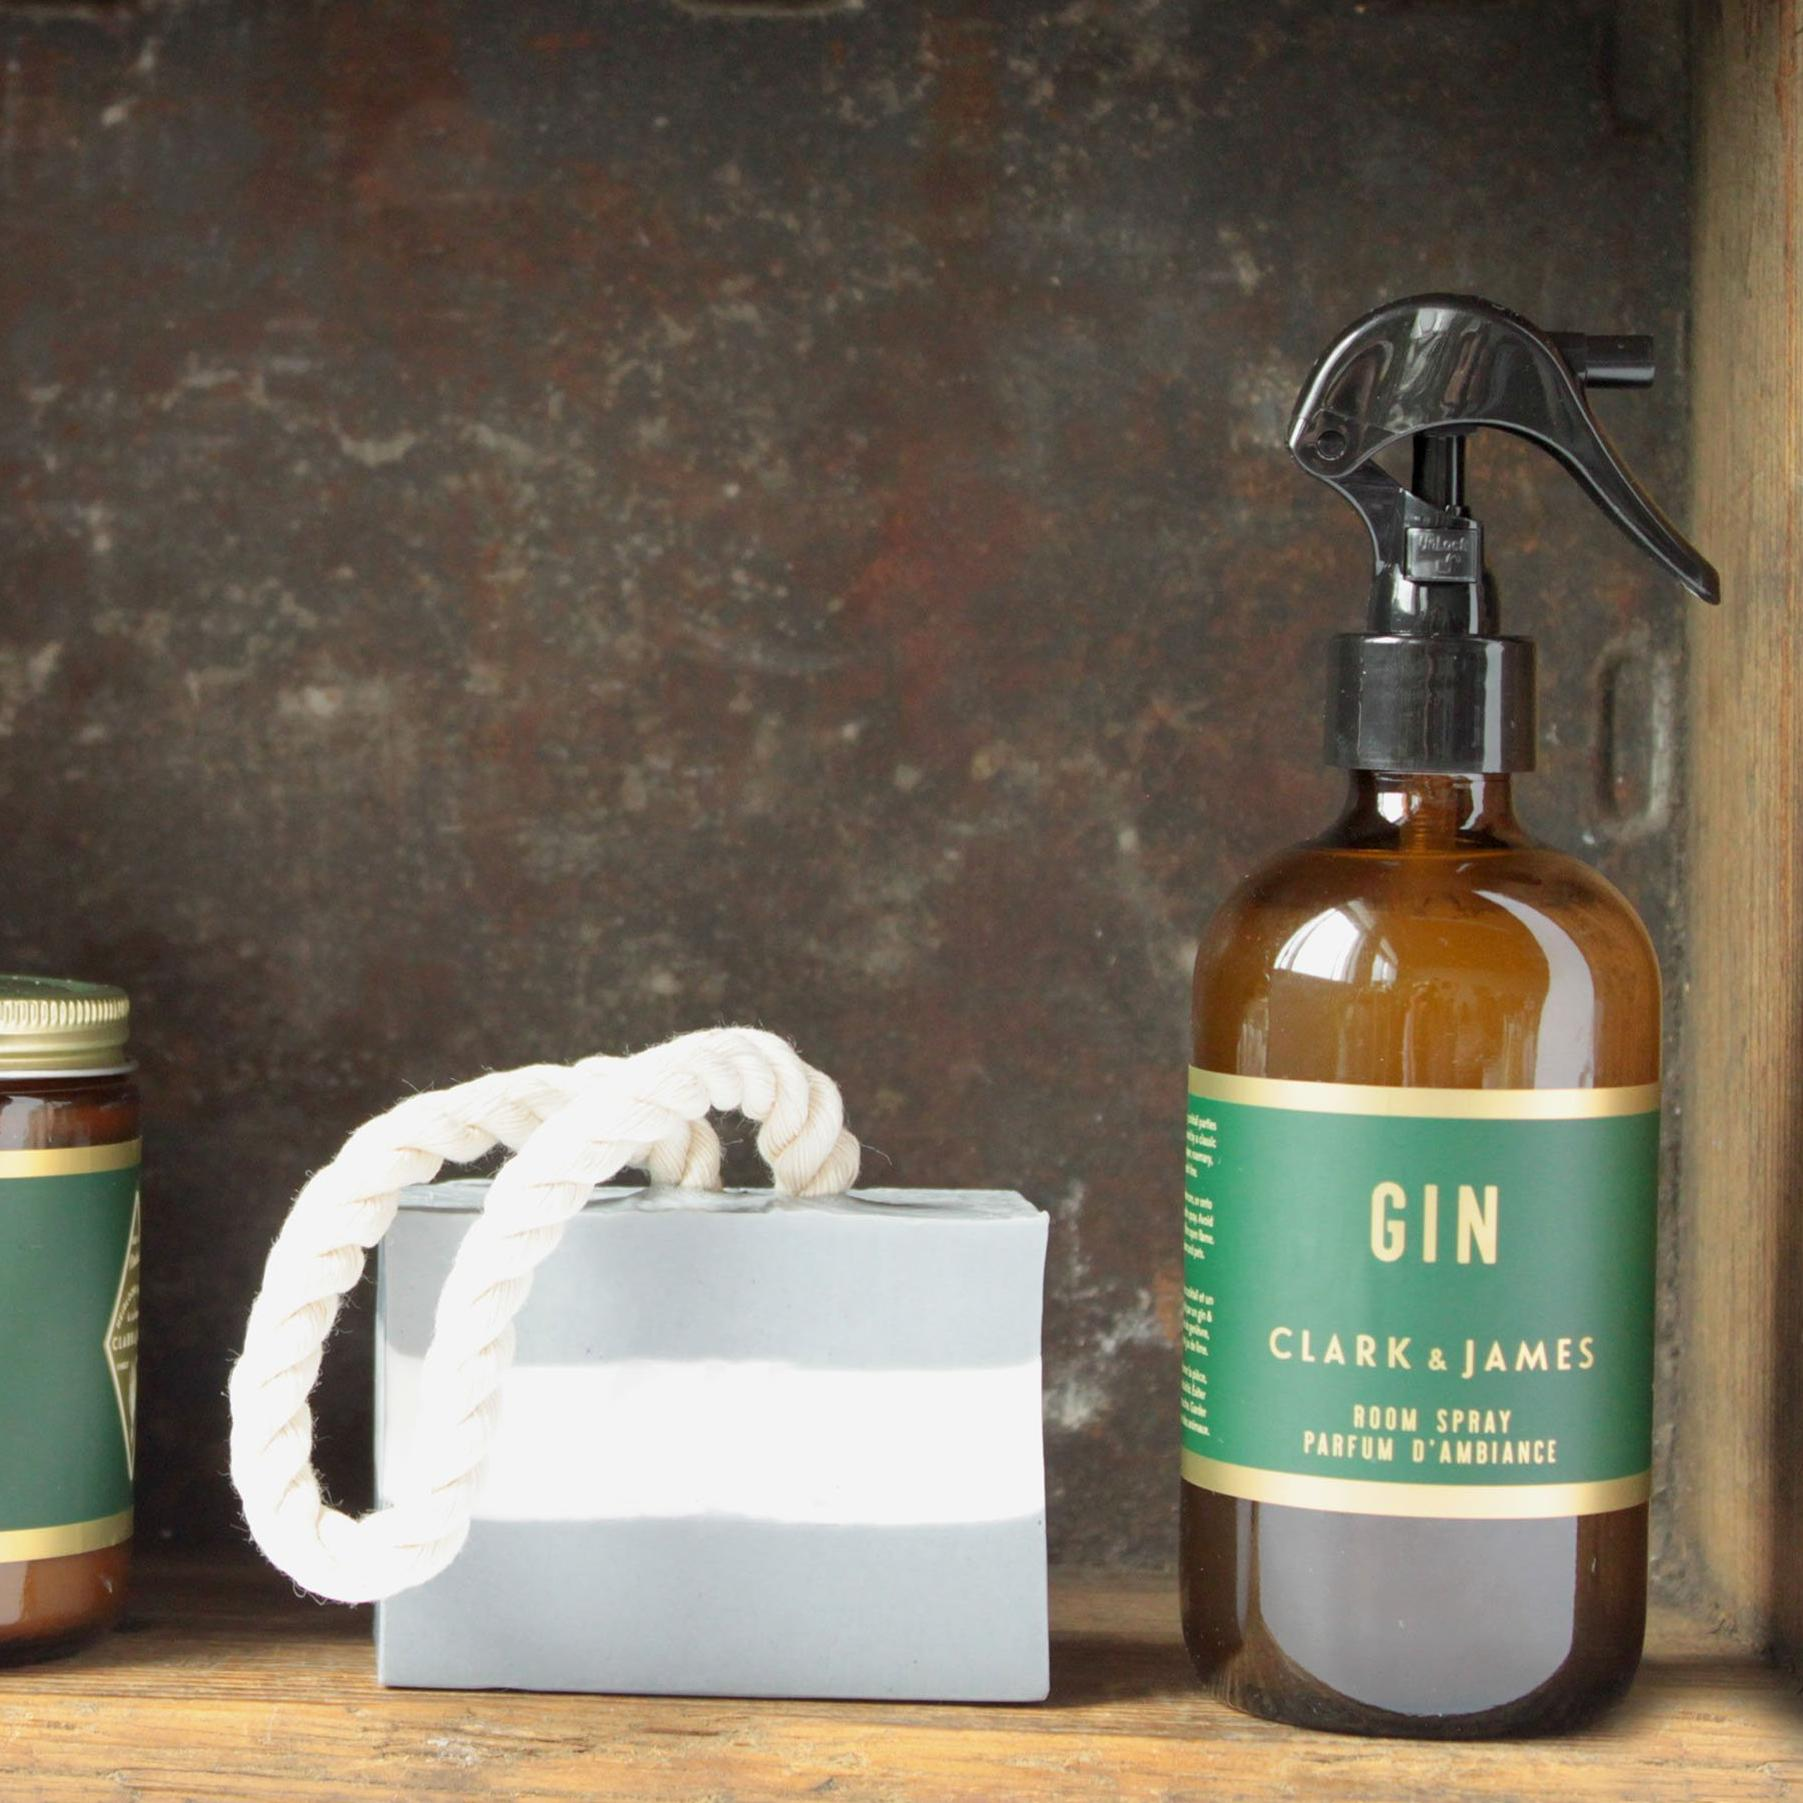 Clark & James Gin room spray